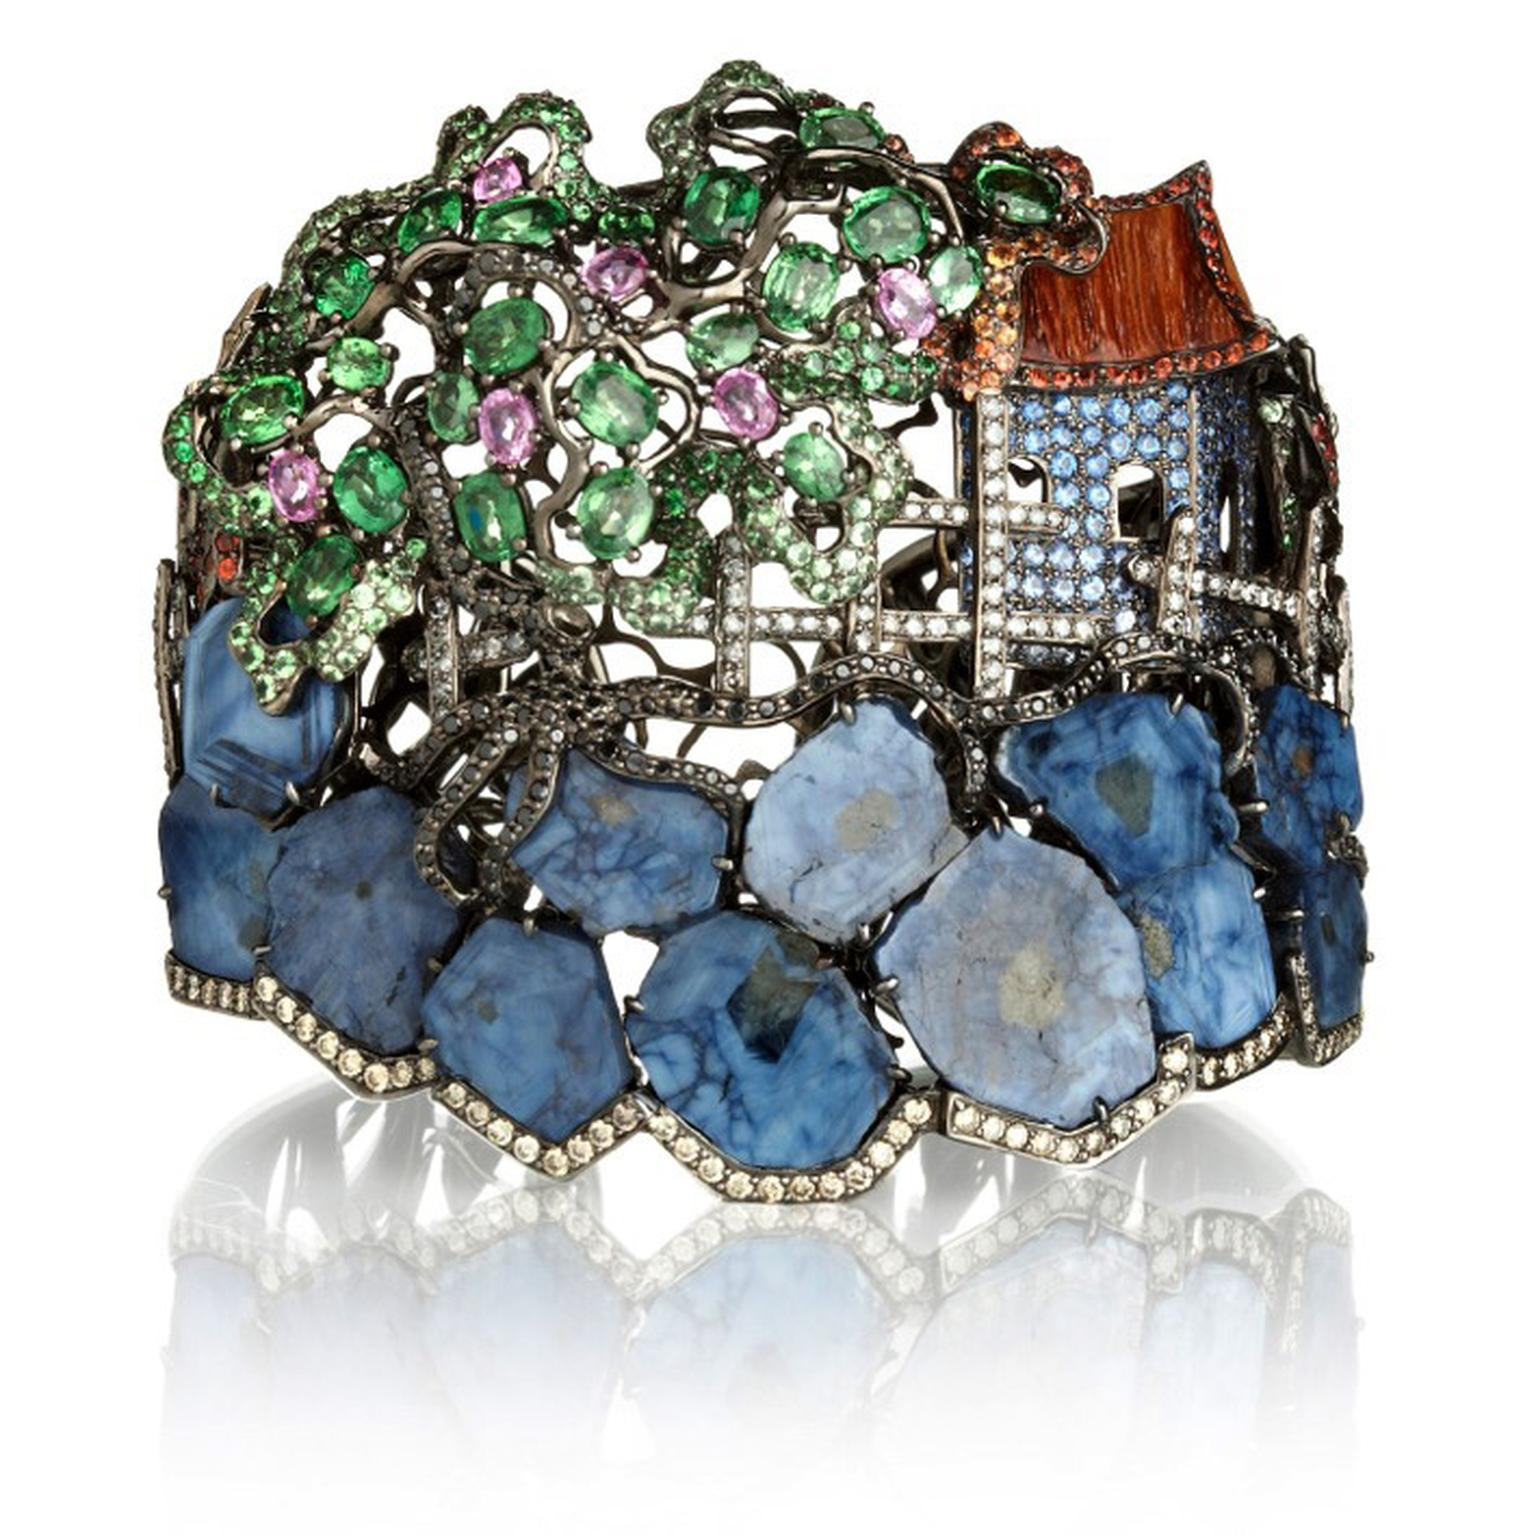 Wendy-Yue-Fantasie-18ct-white-gold,--diamond,sapphires-and-green-garnet-Madagascar-Retreat-bangle-By-Wendy-Yue--for-Annoushka.jpg